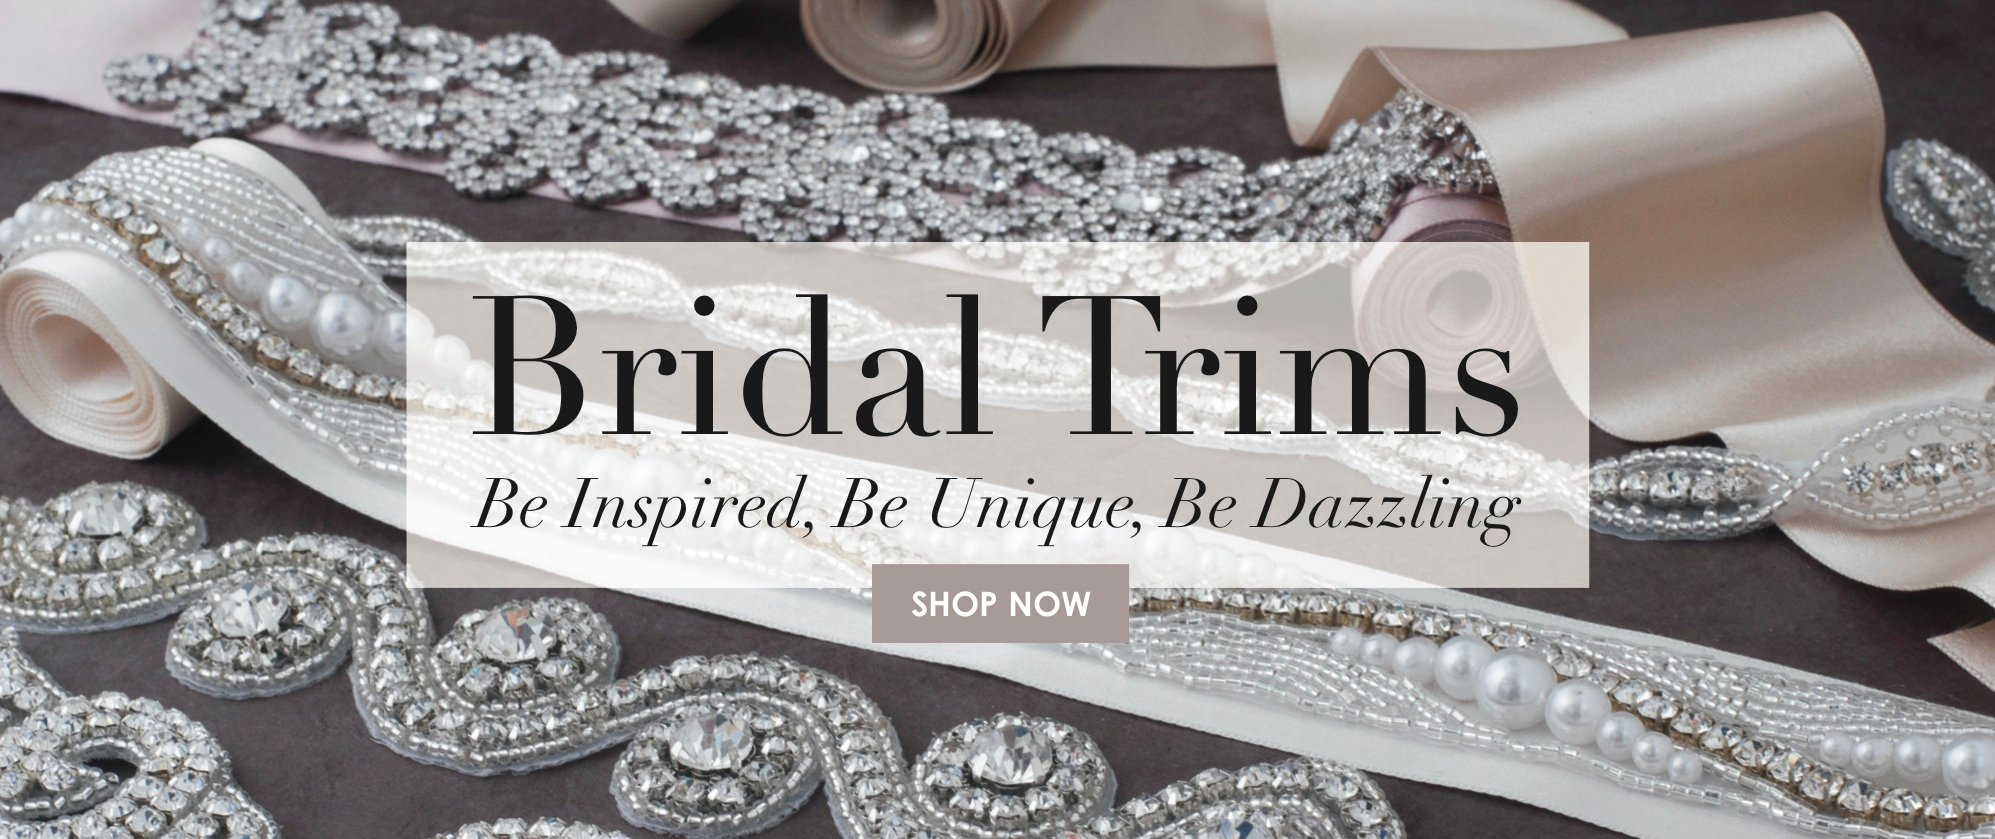 05/22/13_Landing Page: Bridal Trims